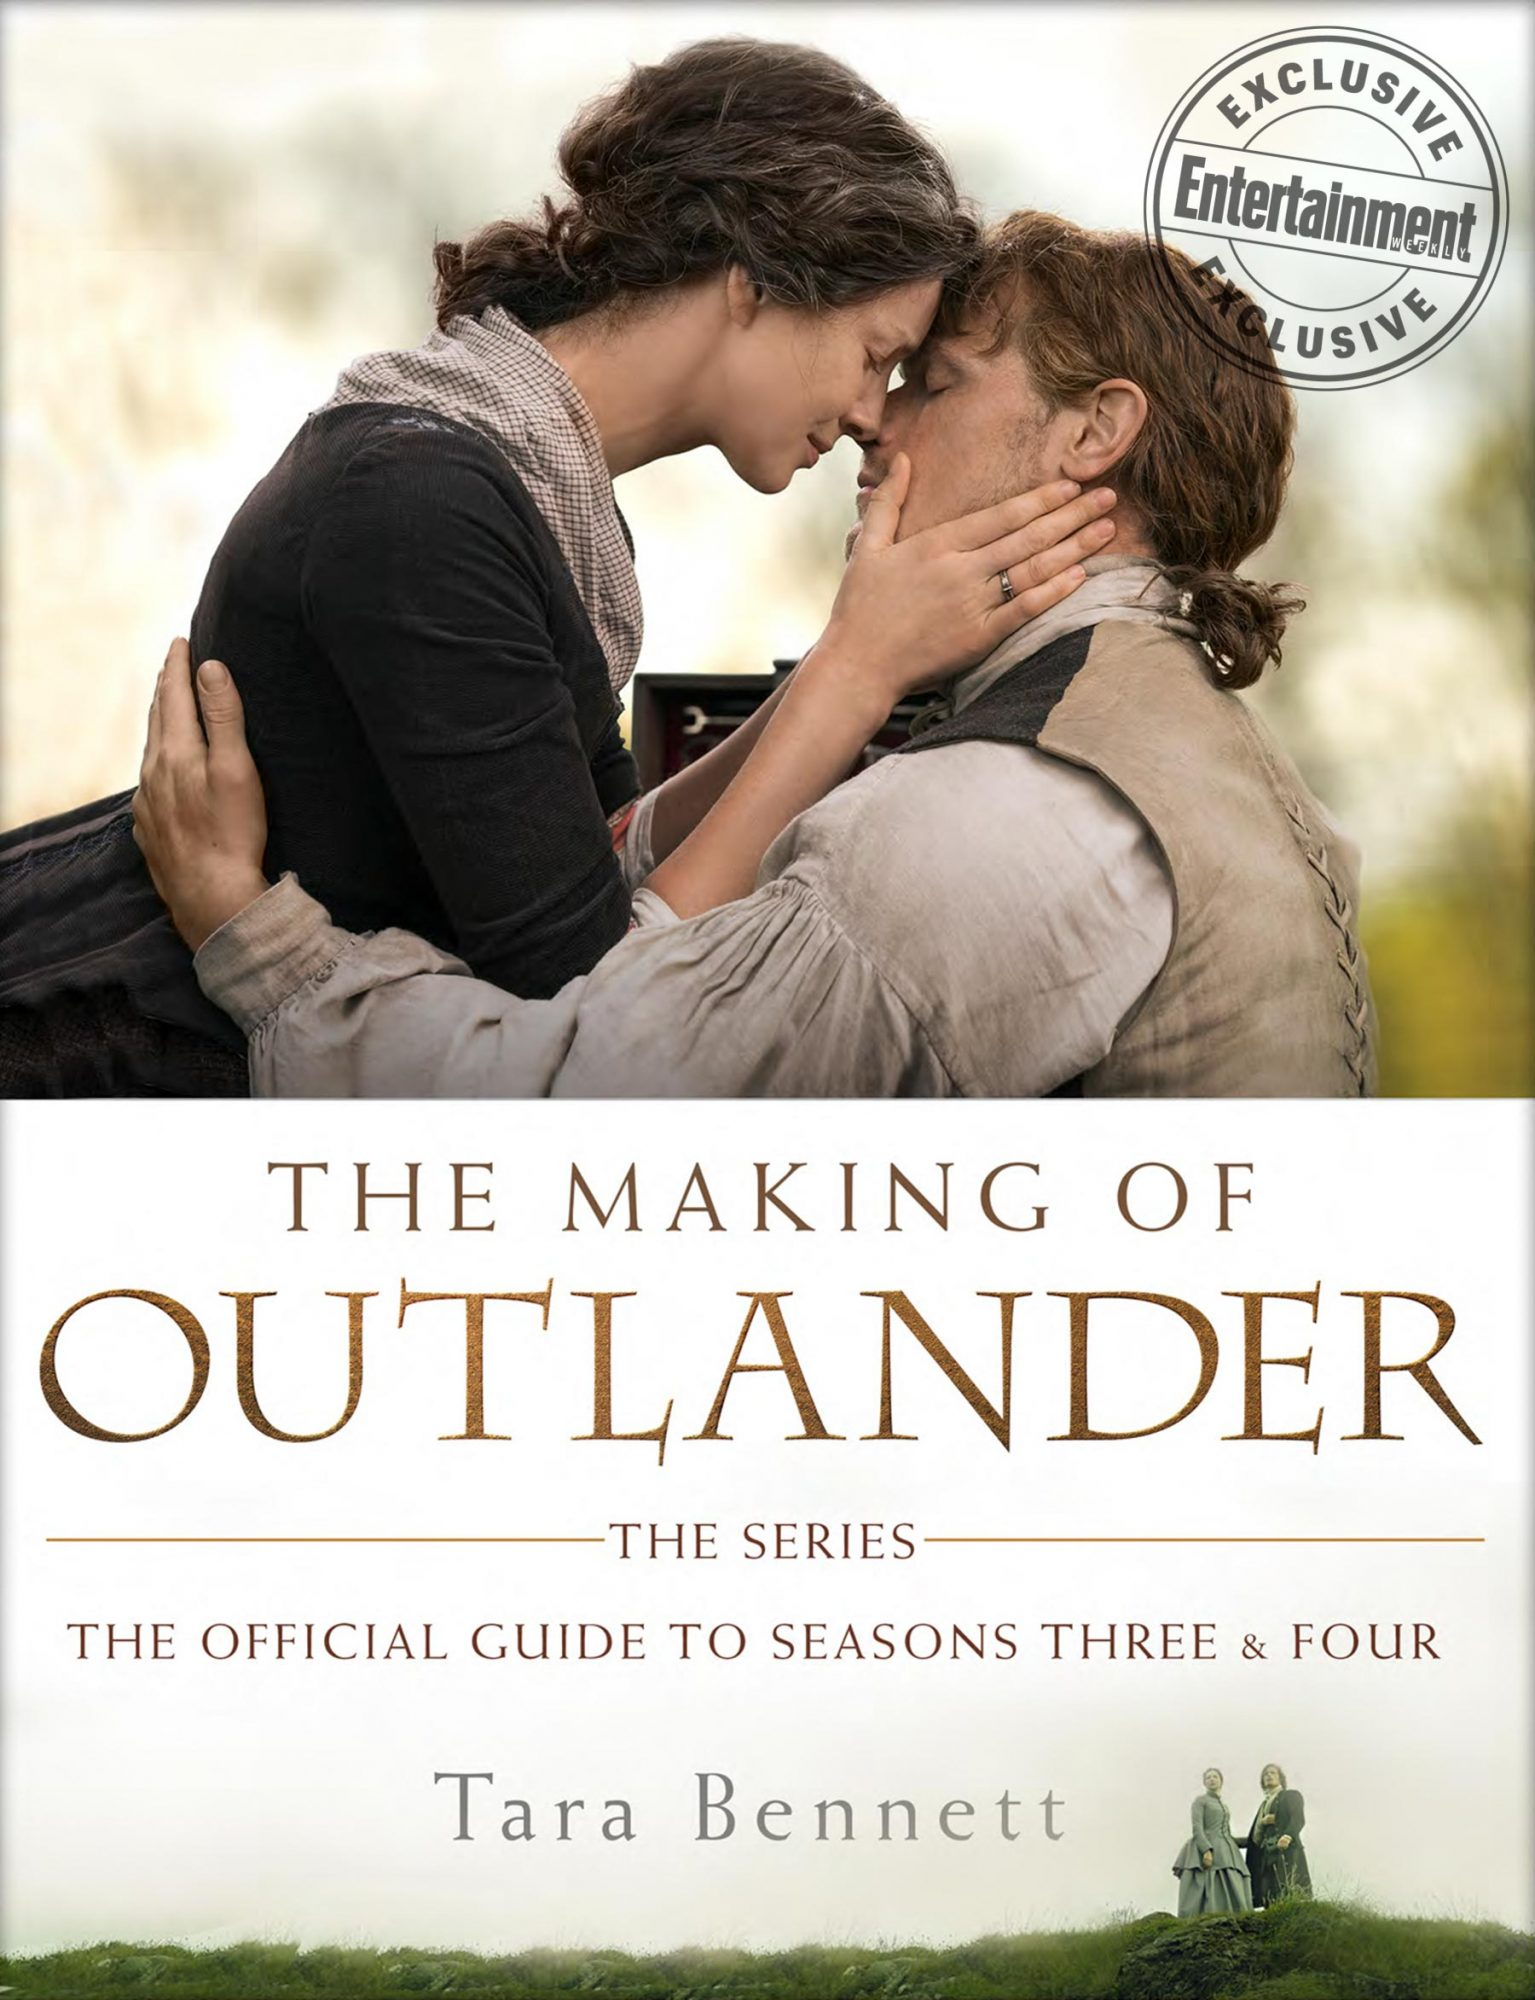 The Making of Outlander: The Series: The Official Guide to Seasons Three & Four by Tara Bennett CR: Random House